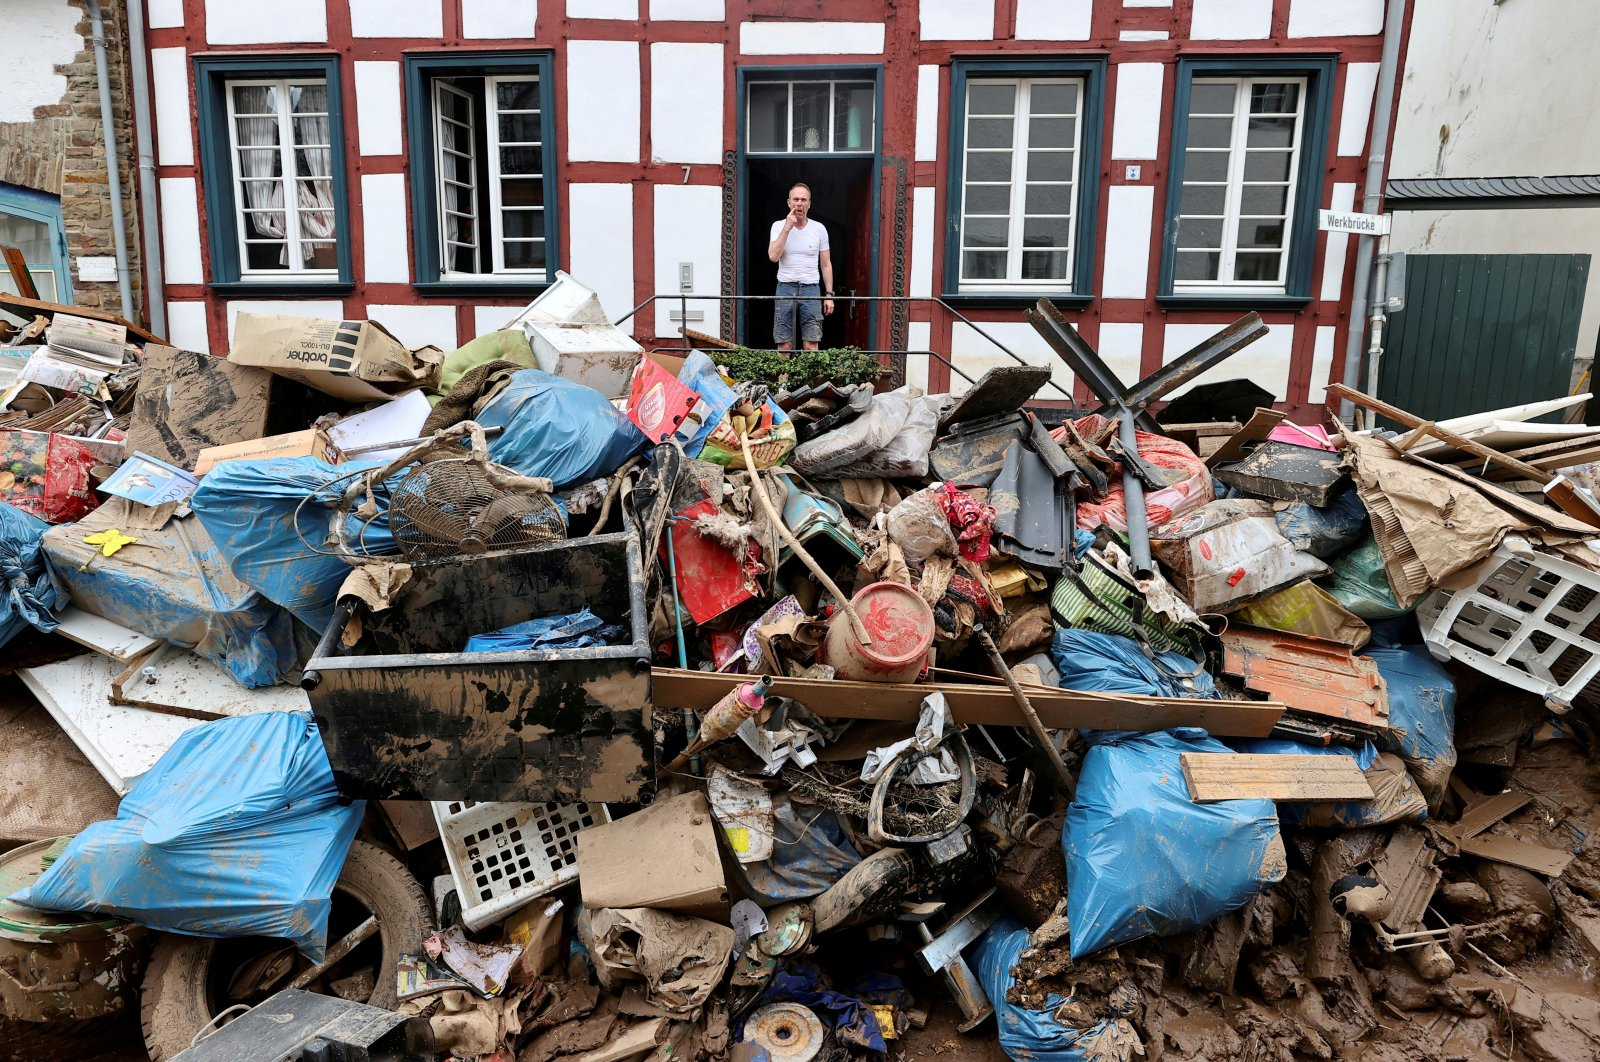 A man looks on outside a house in an area affected by floods caused by heavy rainfalls in Bad Muenstereifel, Germany, July 19, 2021. (Reuters Photo)